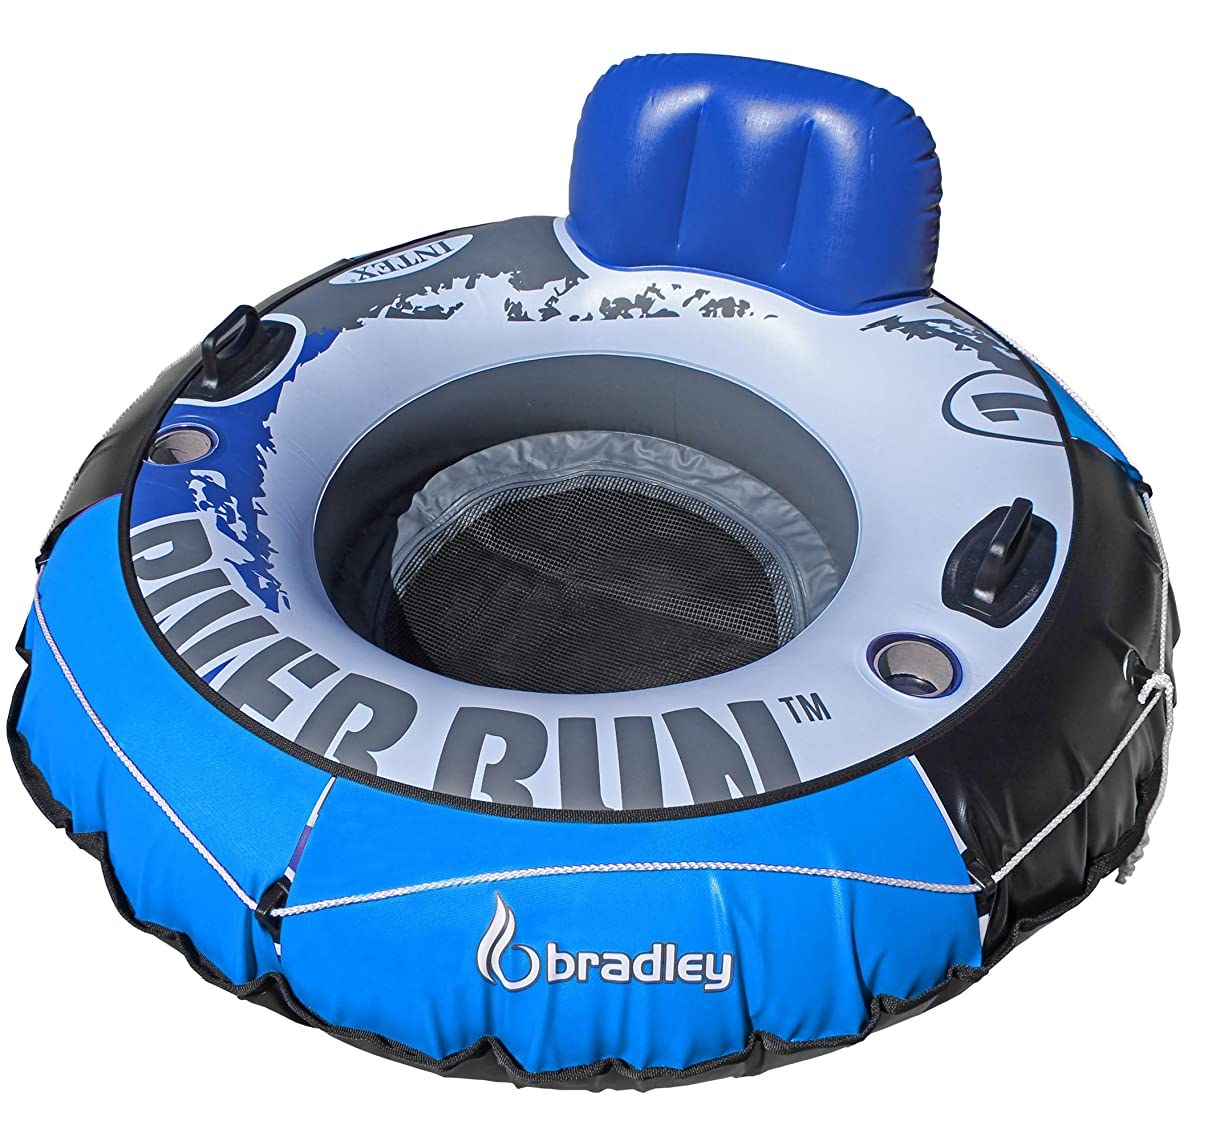 Heavy Duty River Tube Cover   Compatible with Intex River Run, Bestway Rapid Rider & Most 53